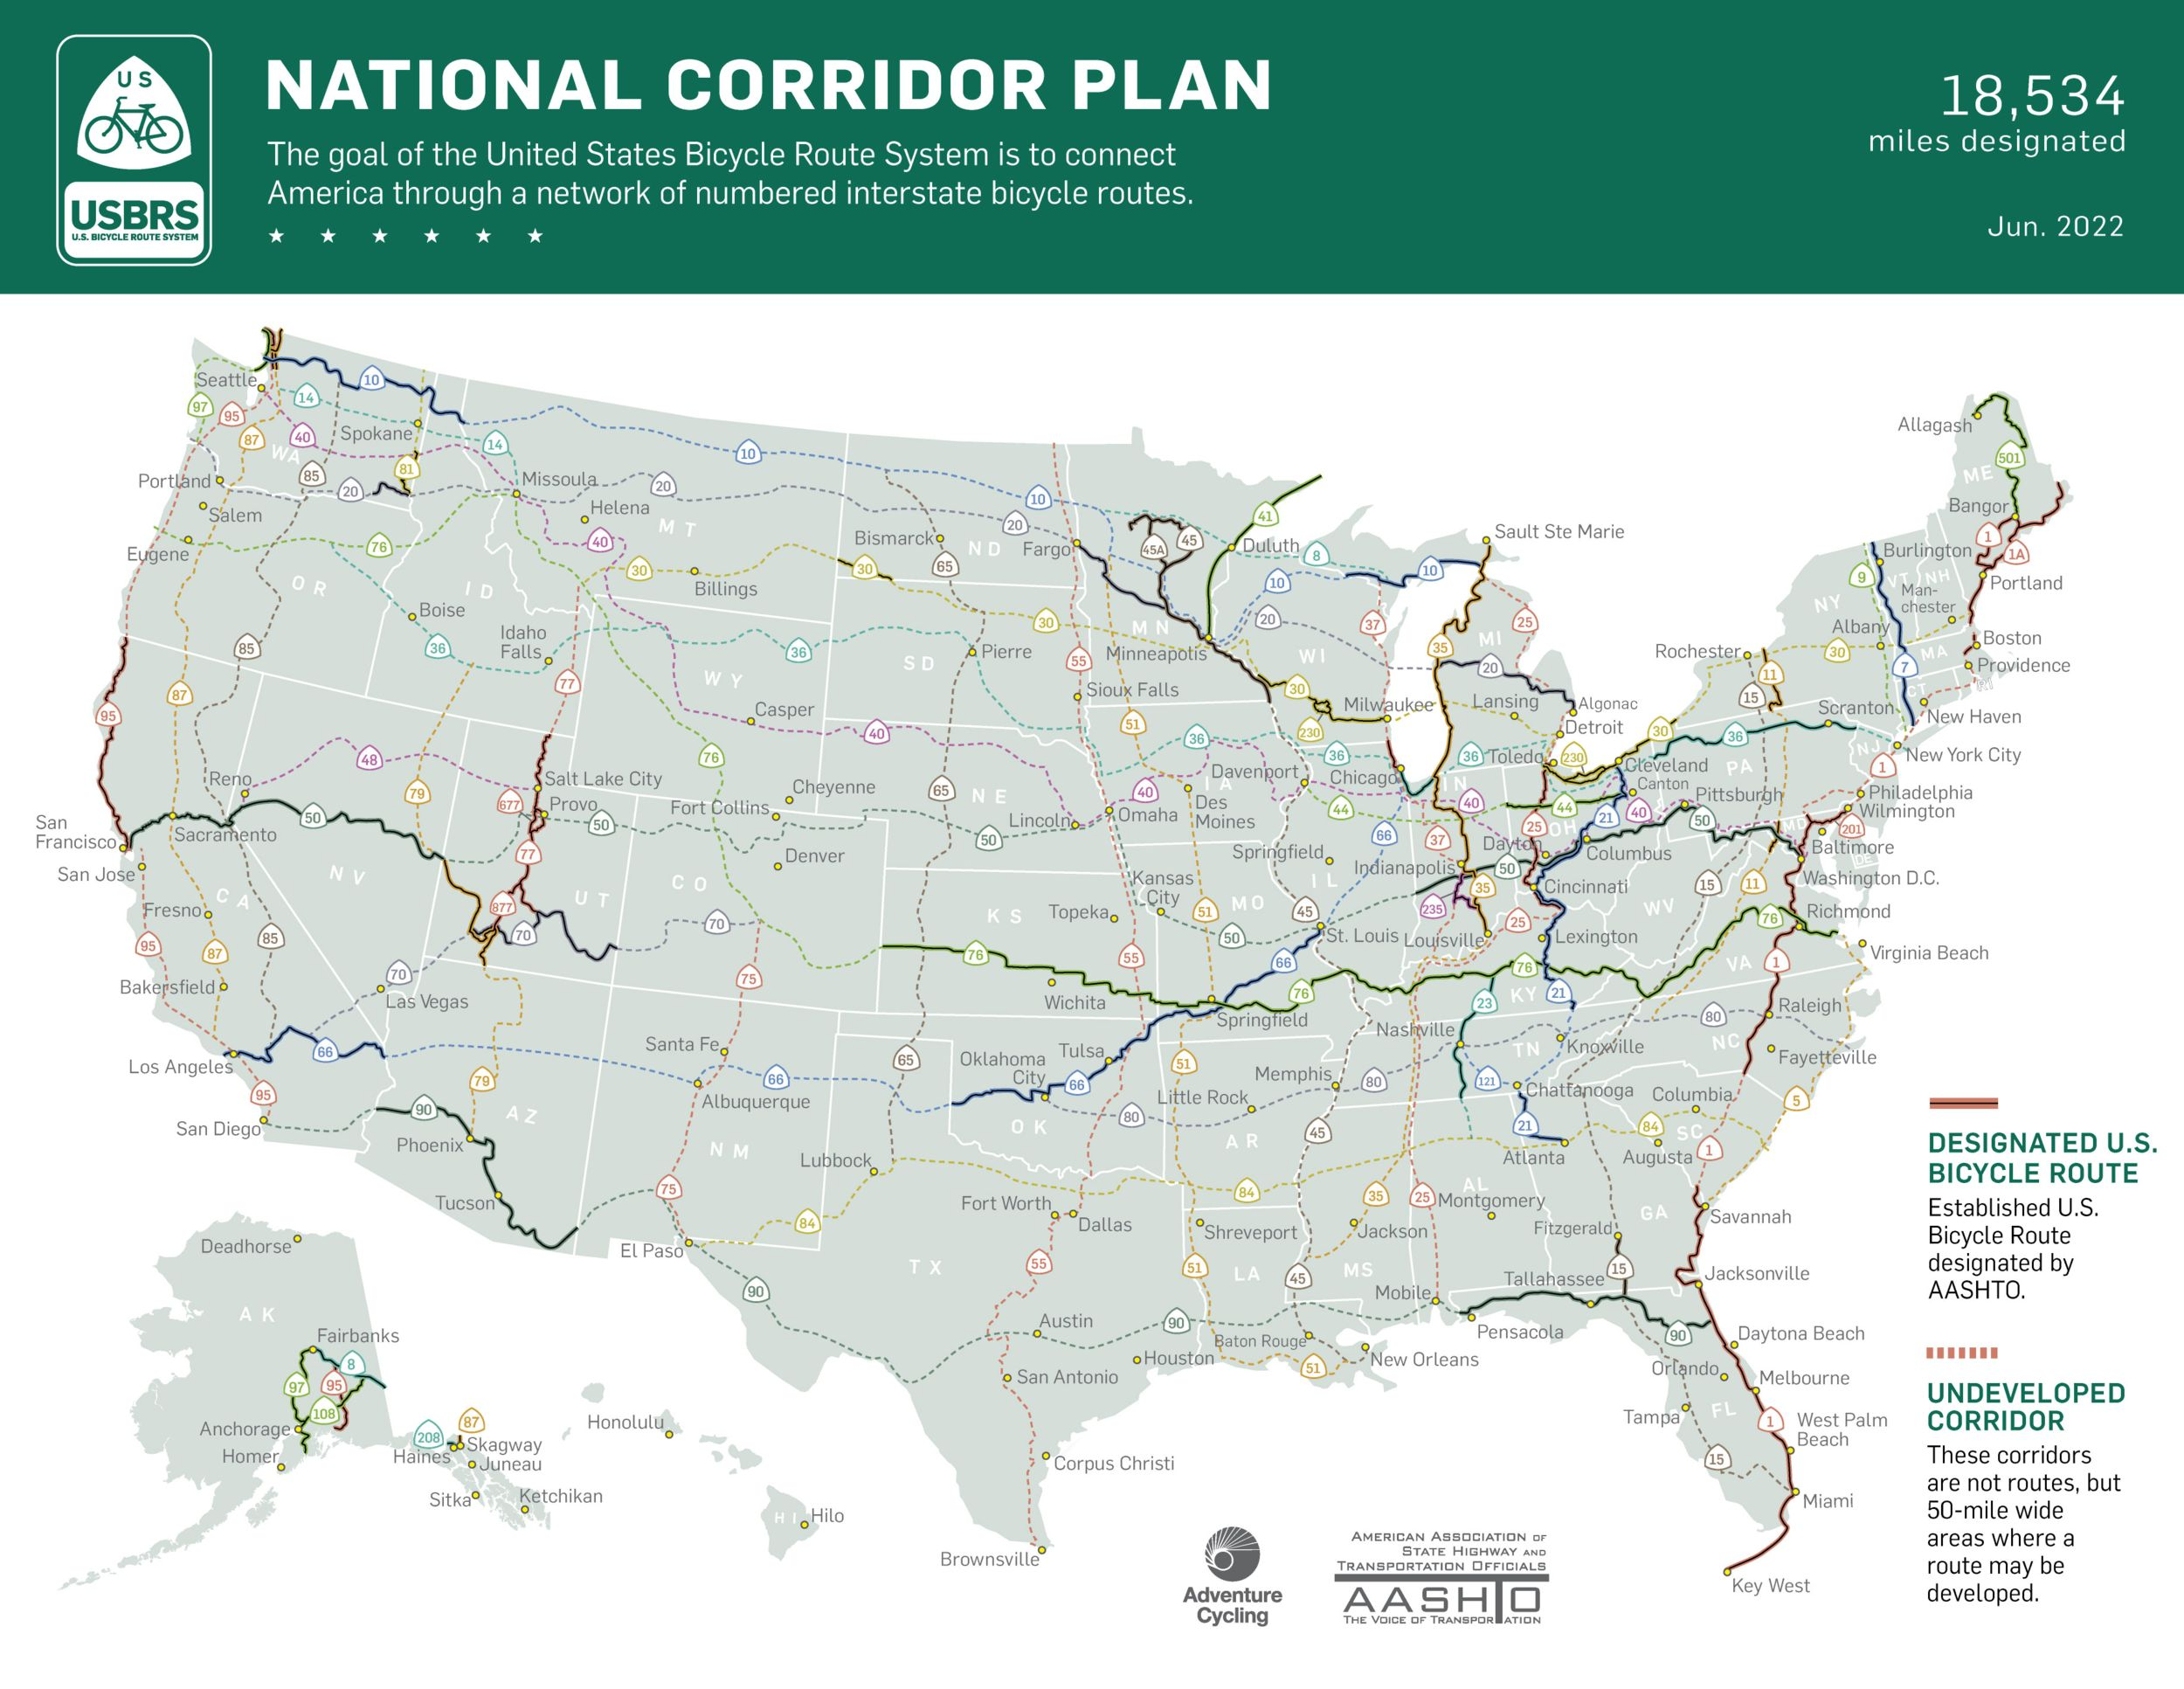 National Corridor Plan Us Bicycle Route System Adventure - Map-of-us-route-1